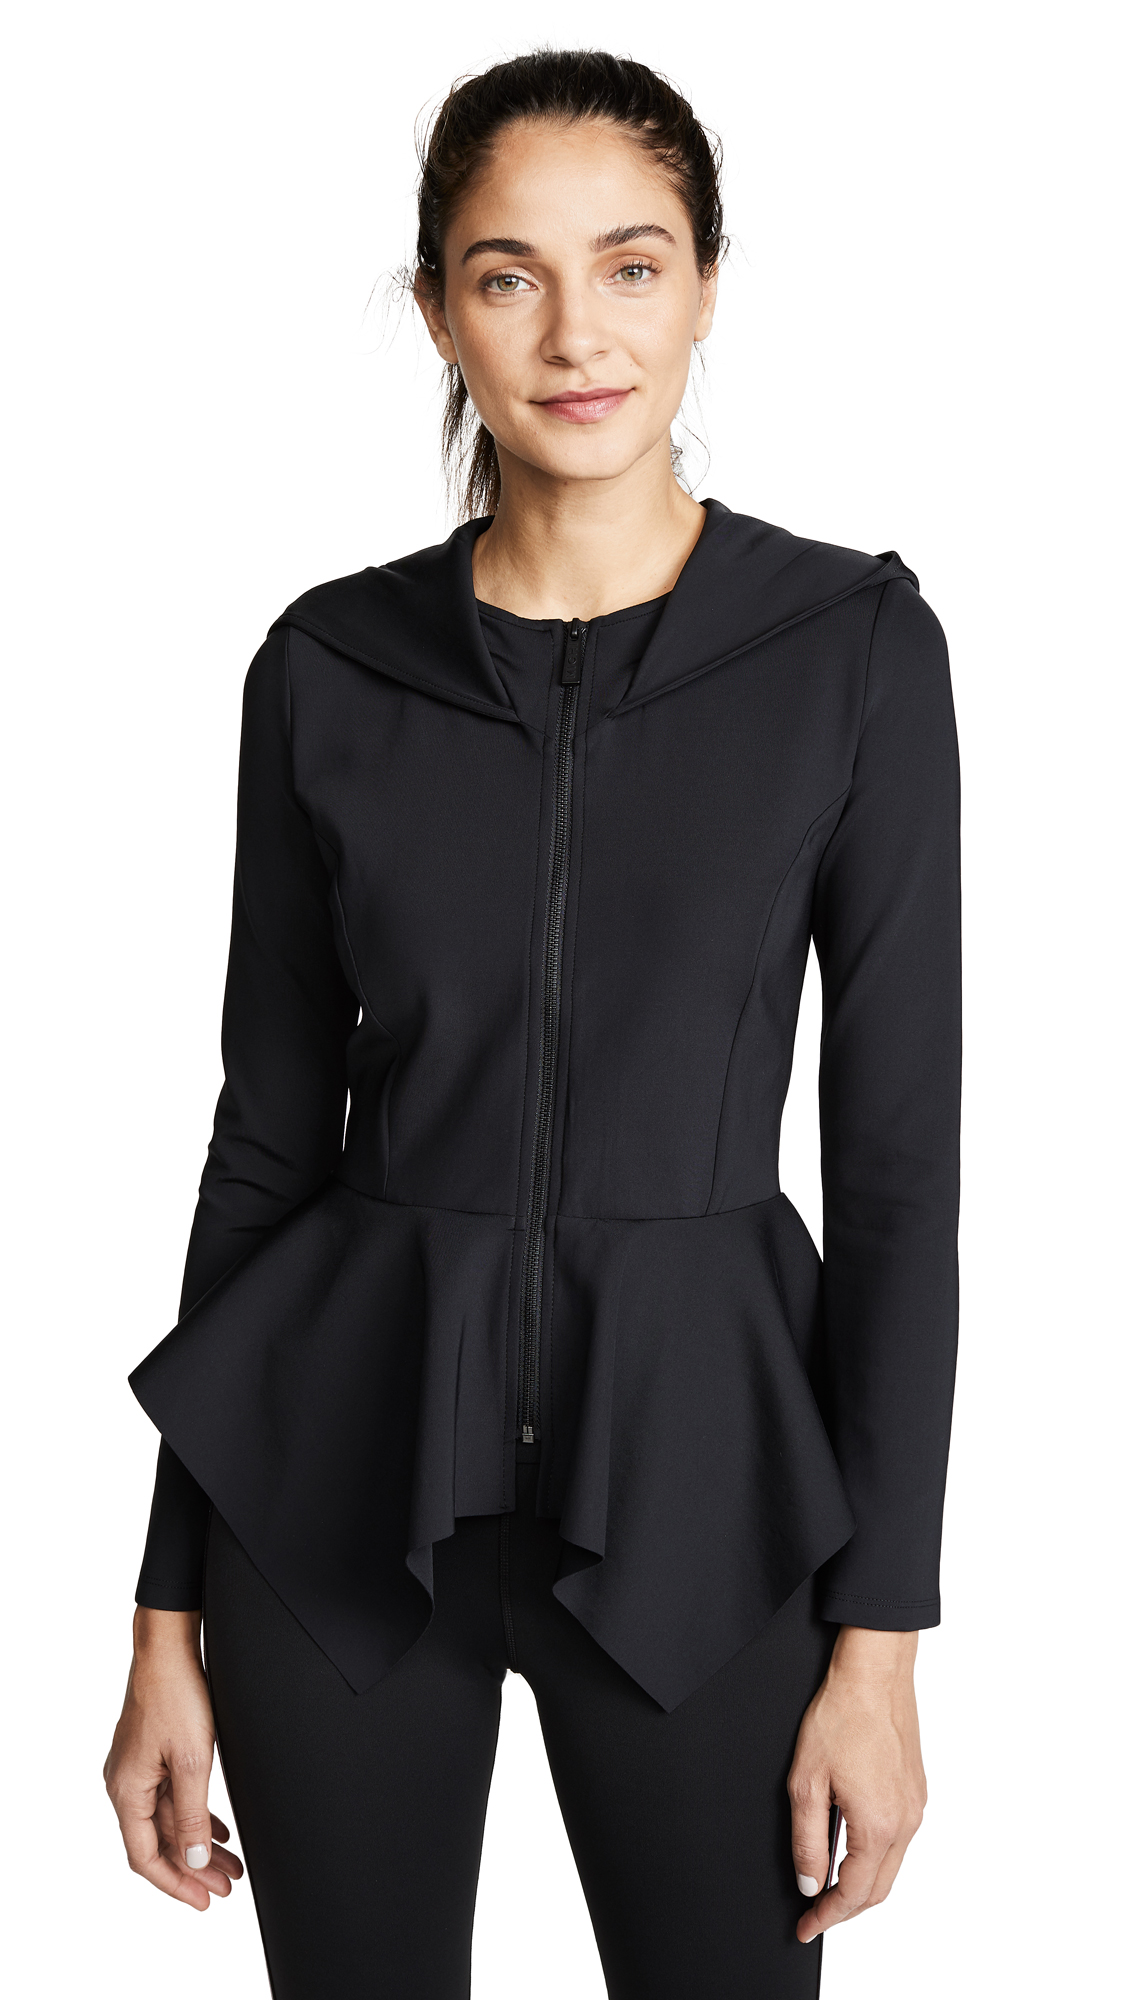 MICHI Nightfall Jacket in Black